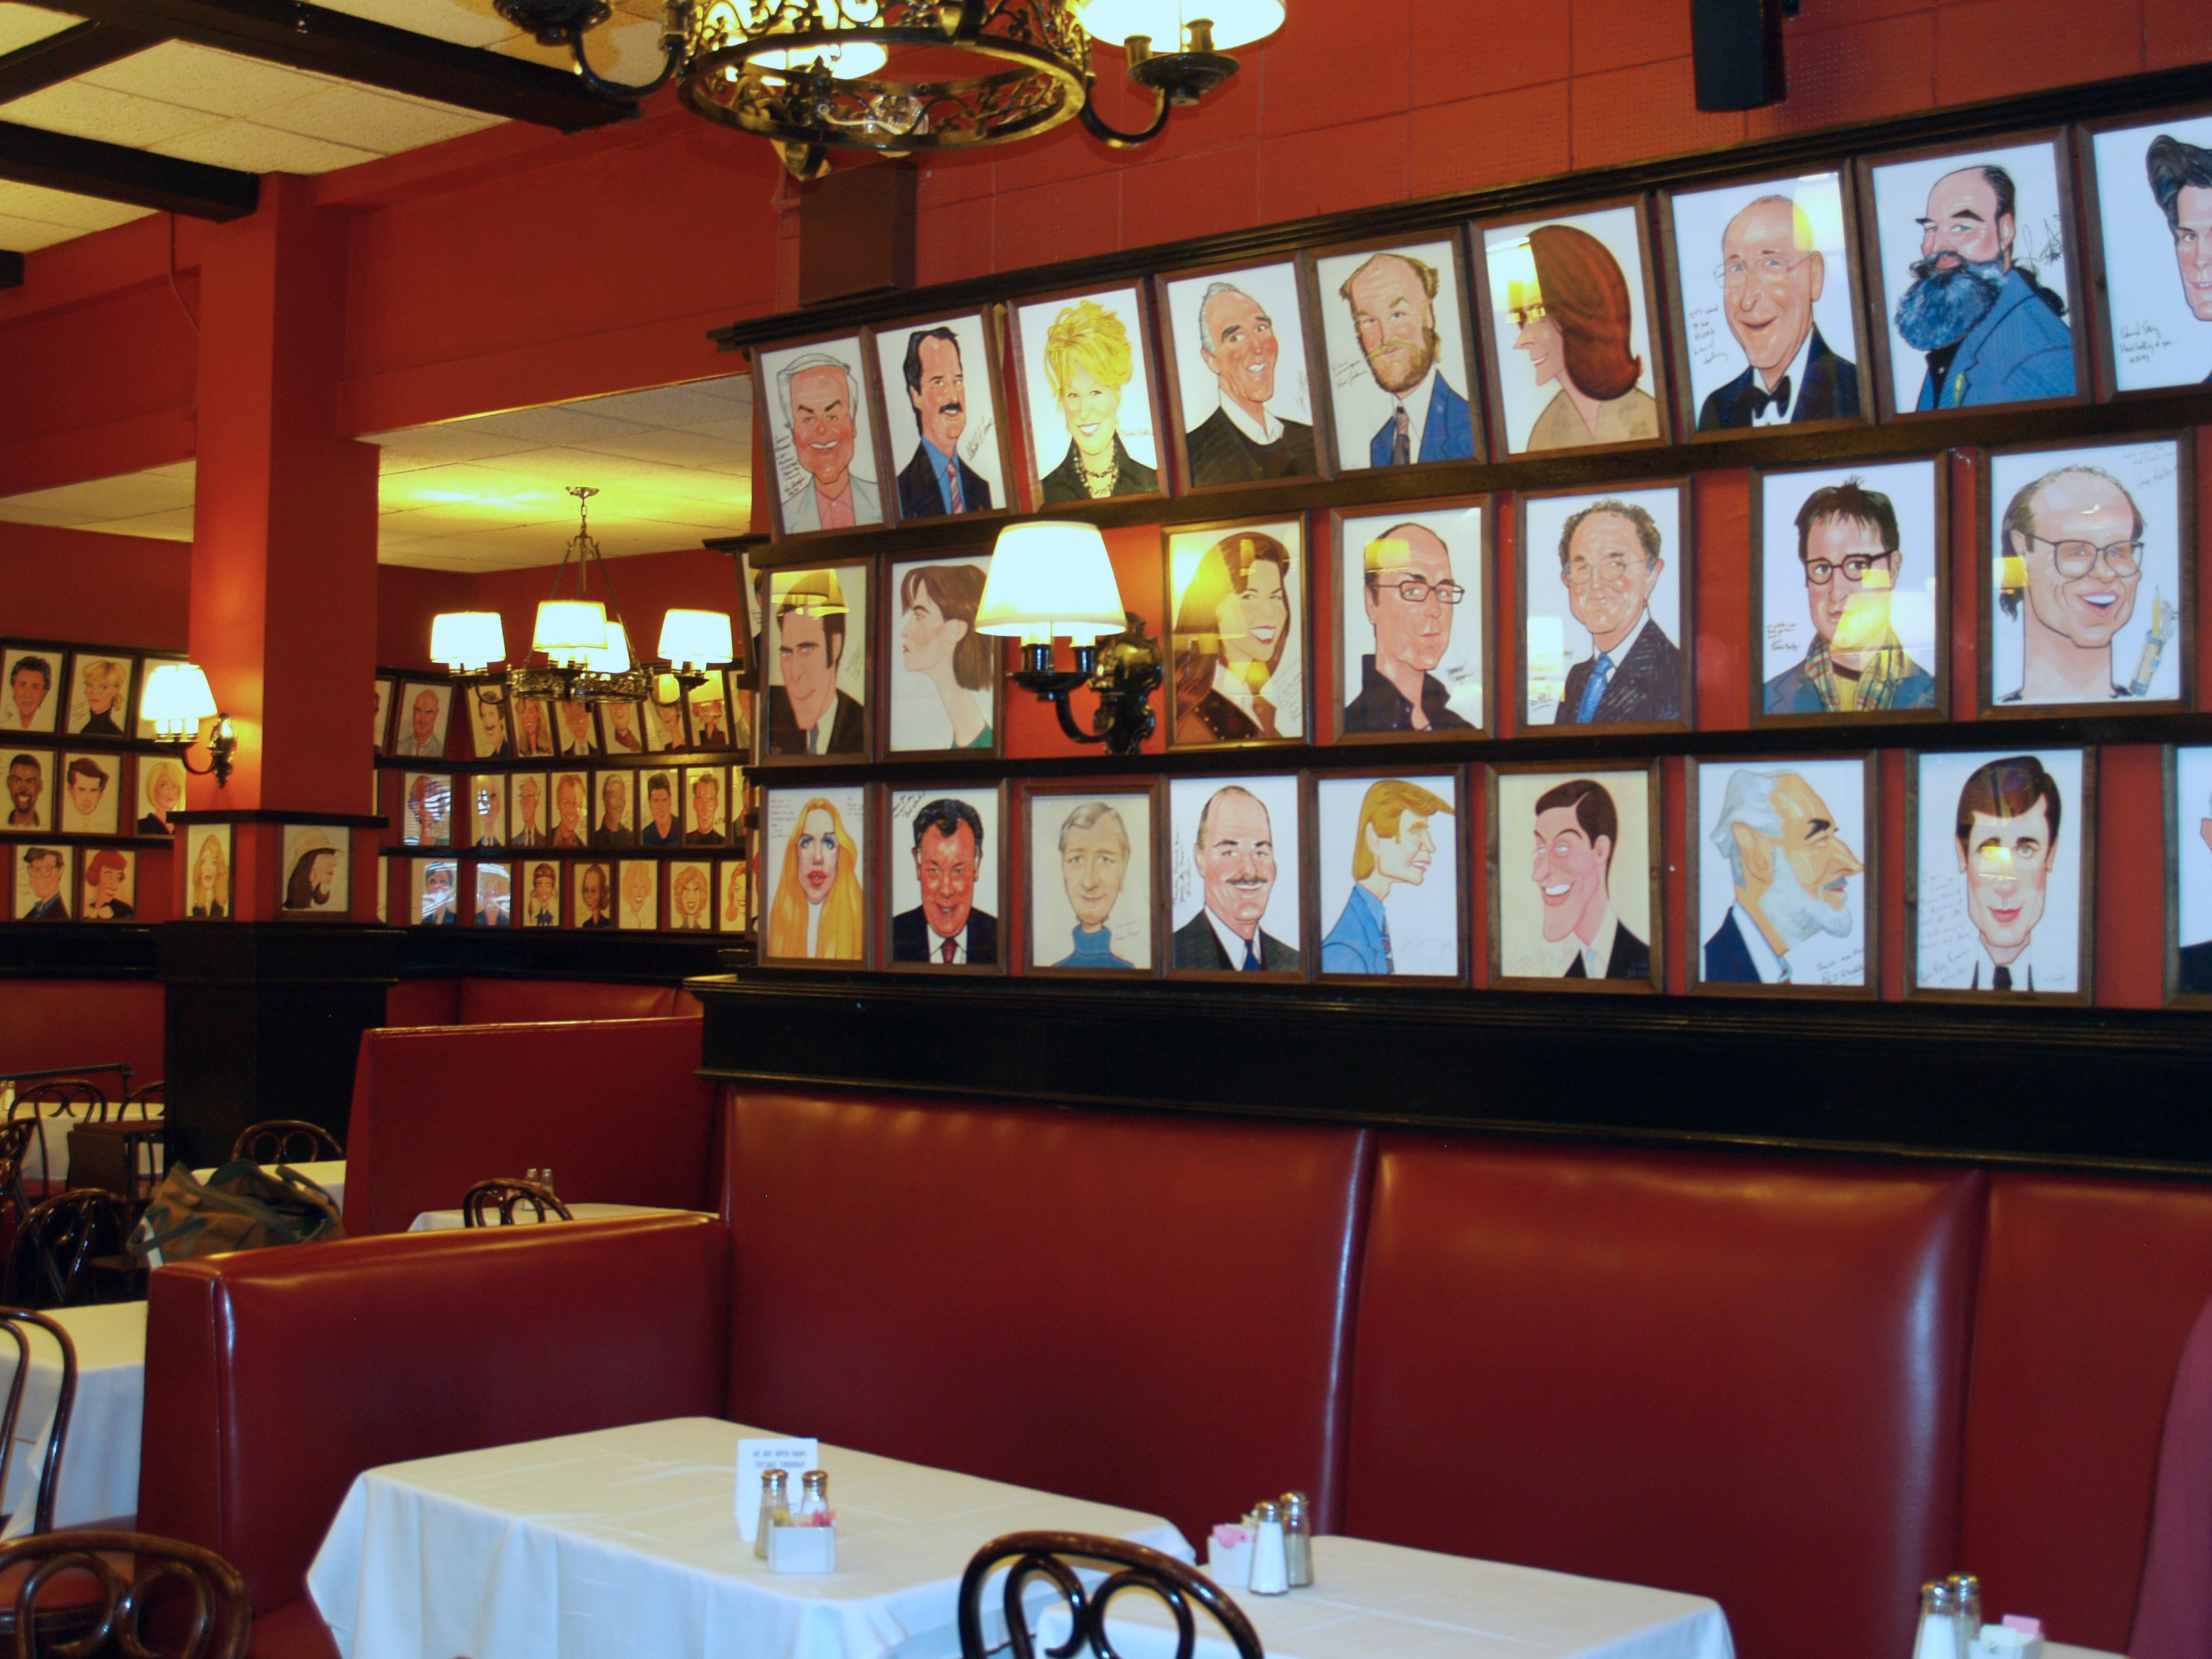 The 10 Best Restaurants for Spotting a Celebrity in NYC